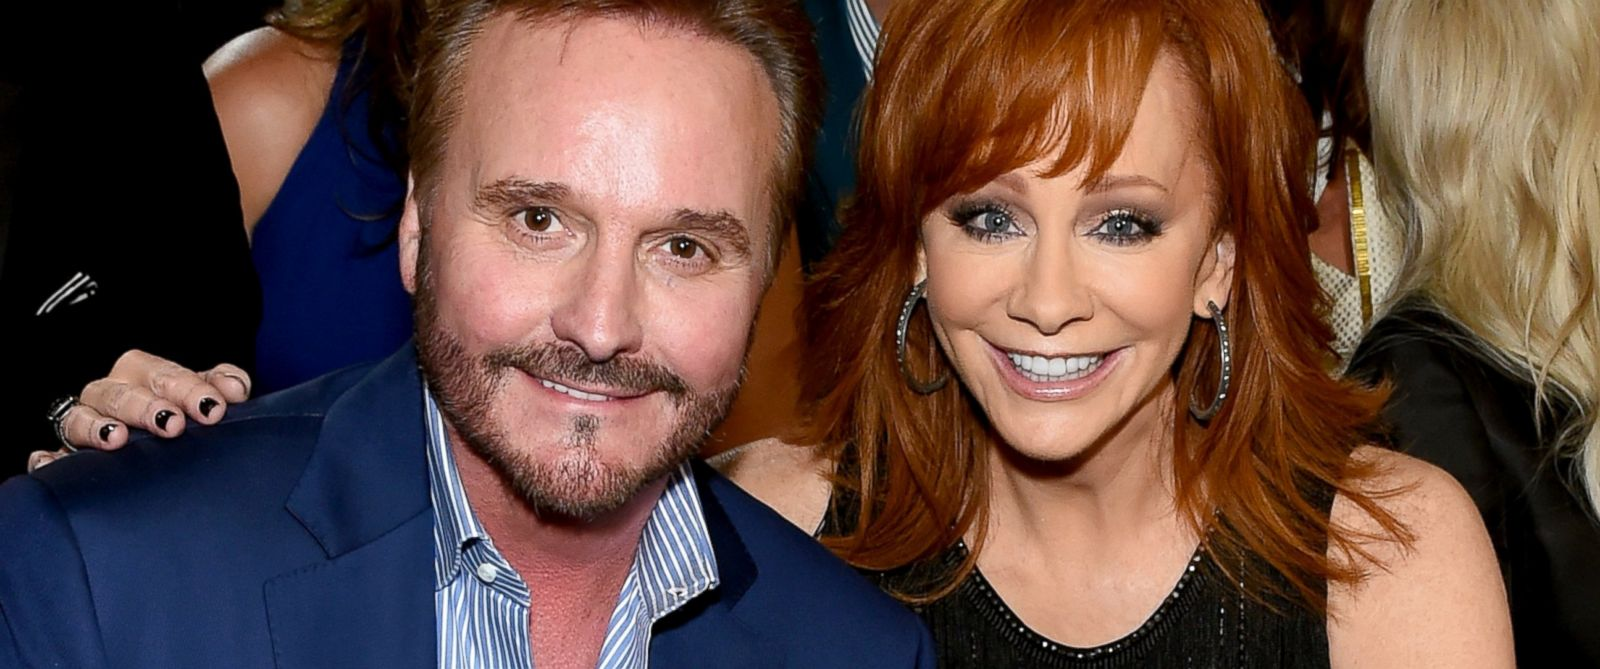 PHOTO: Narvel Blackstock and honoree Reba McEntire attend the 50th Academy of Country Music Awards at AT&T Stadium in this April 19, 2015 file photo in Arlington, Texas.